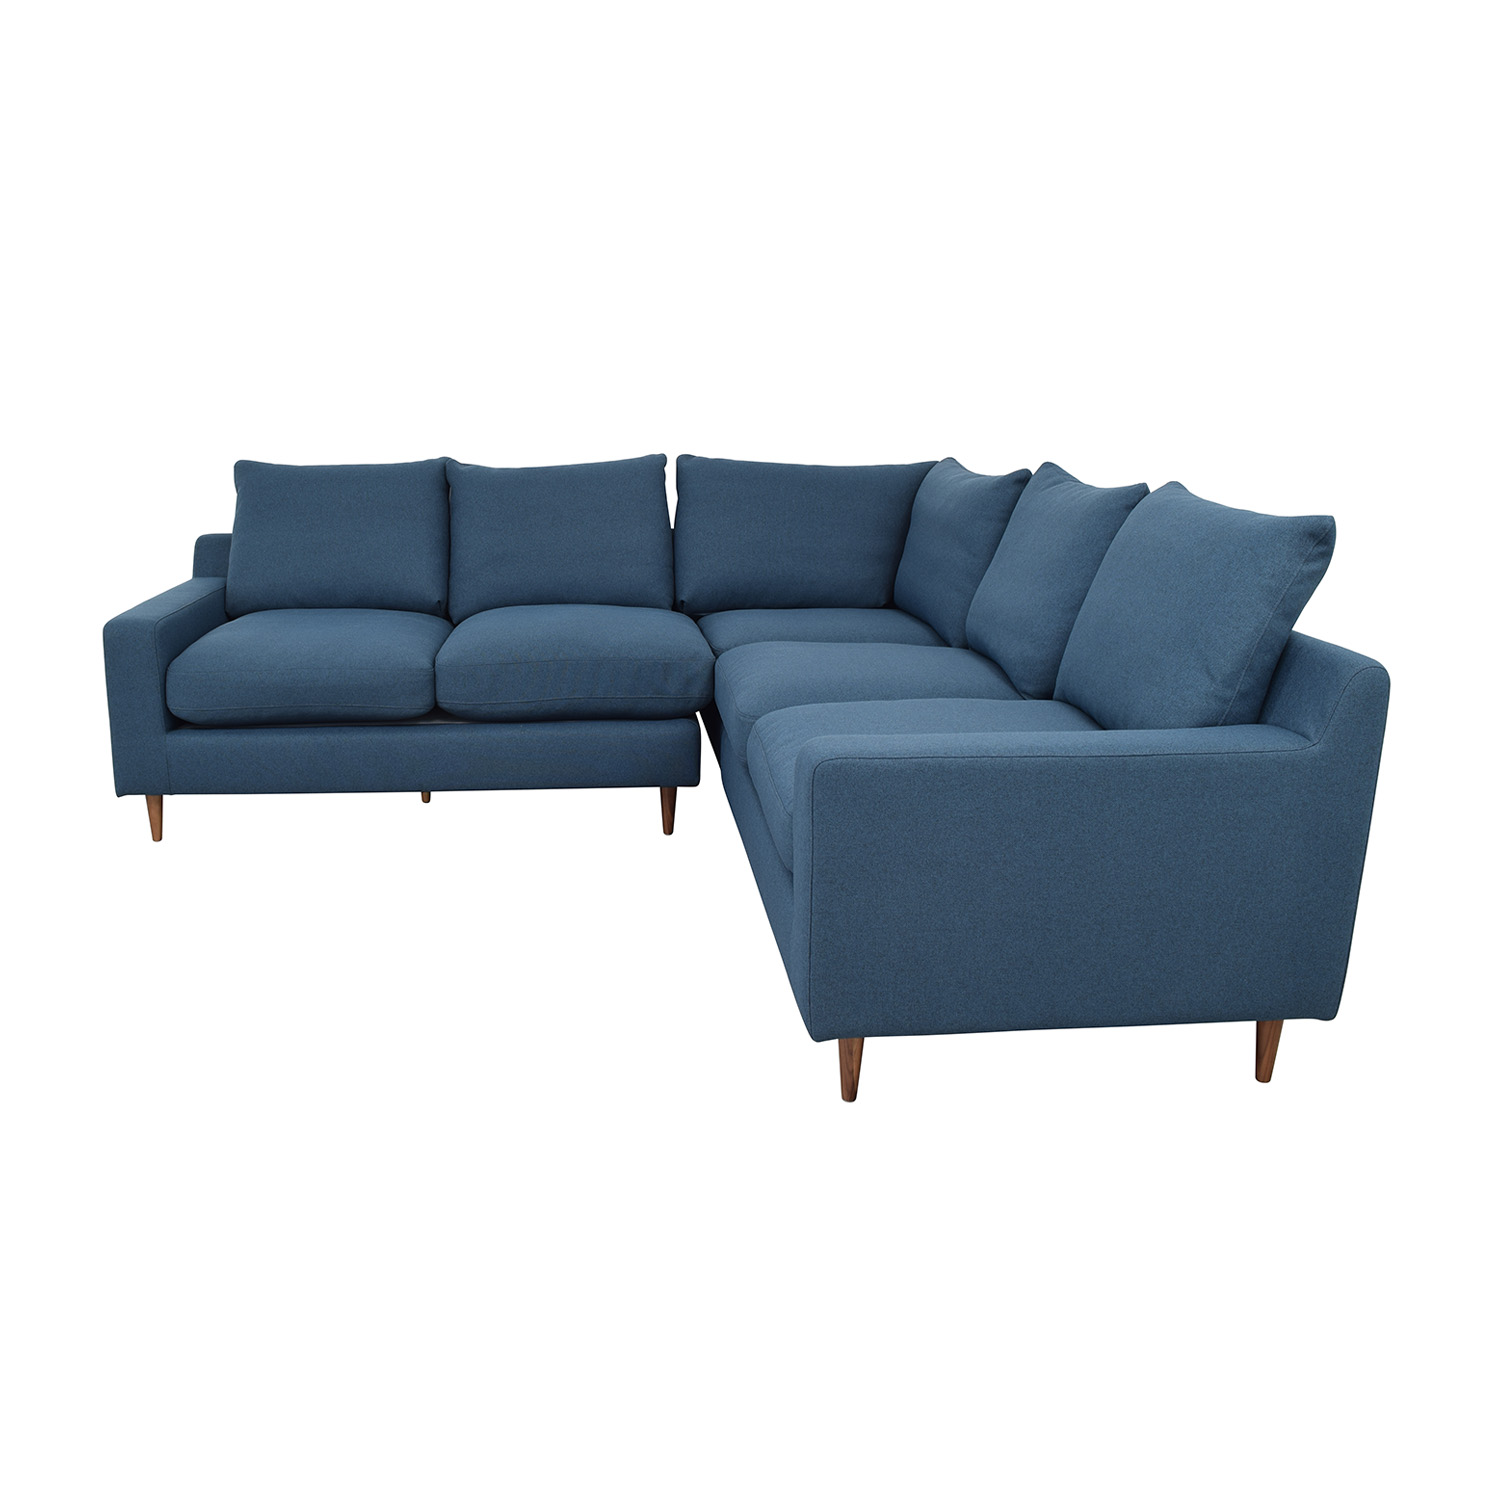 Sloan Blue L-Shaped Sectional sale